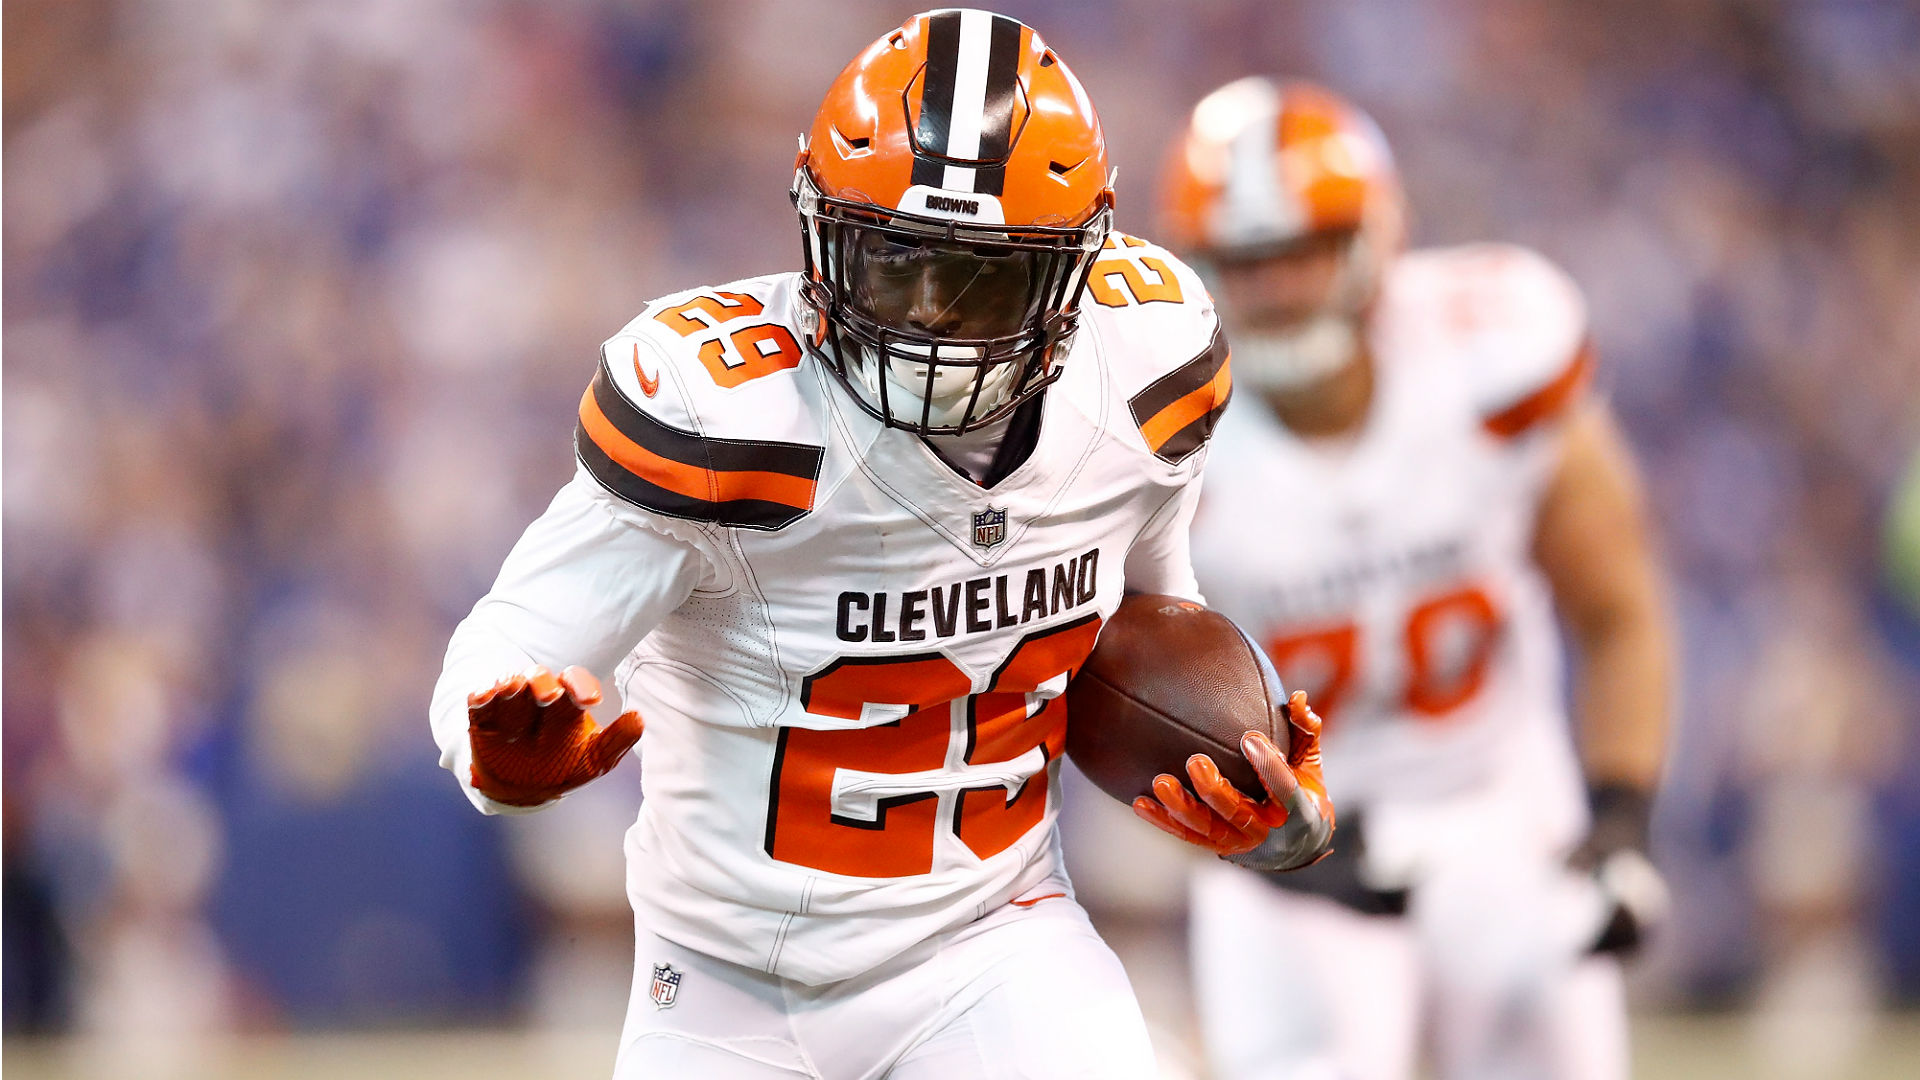 Browns RB Duke Johnson on his lack of touches: 'I can help this team win given more opportunities'